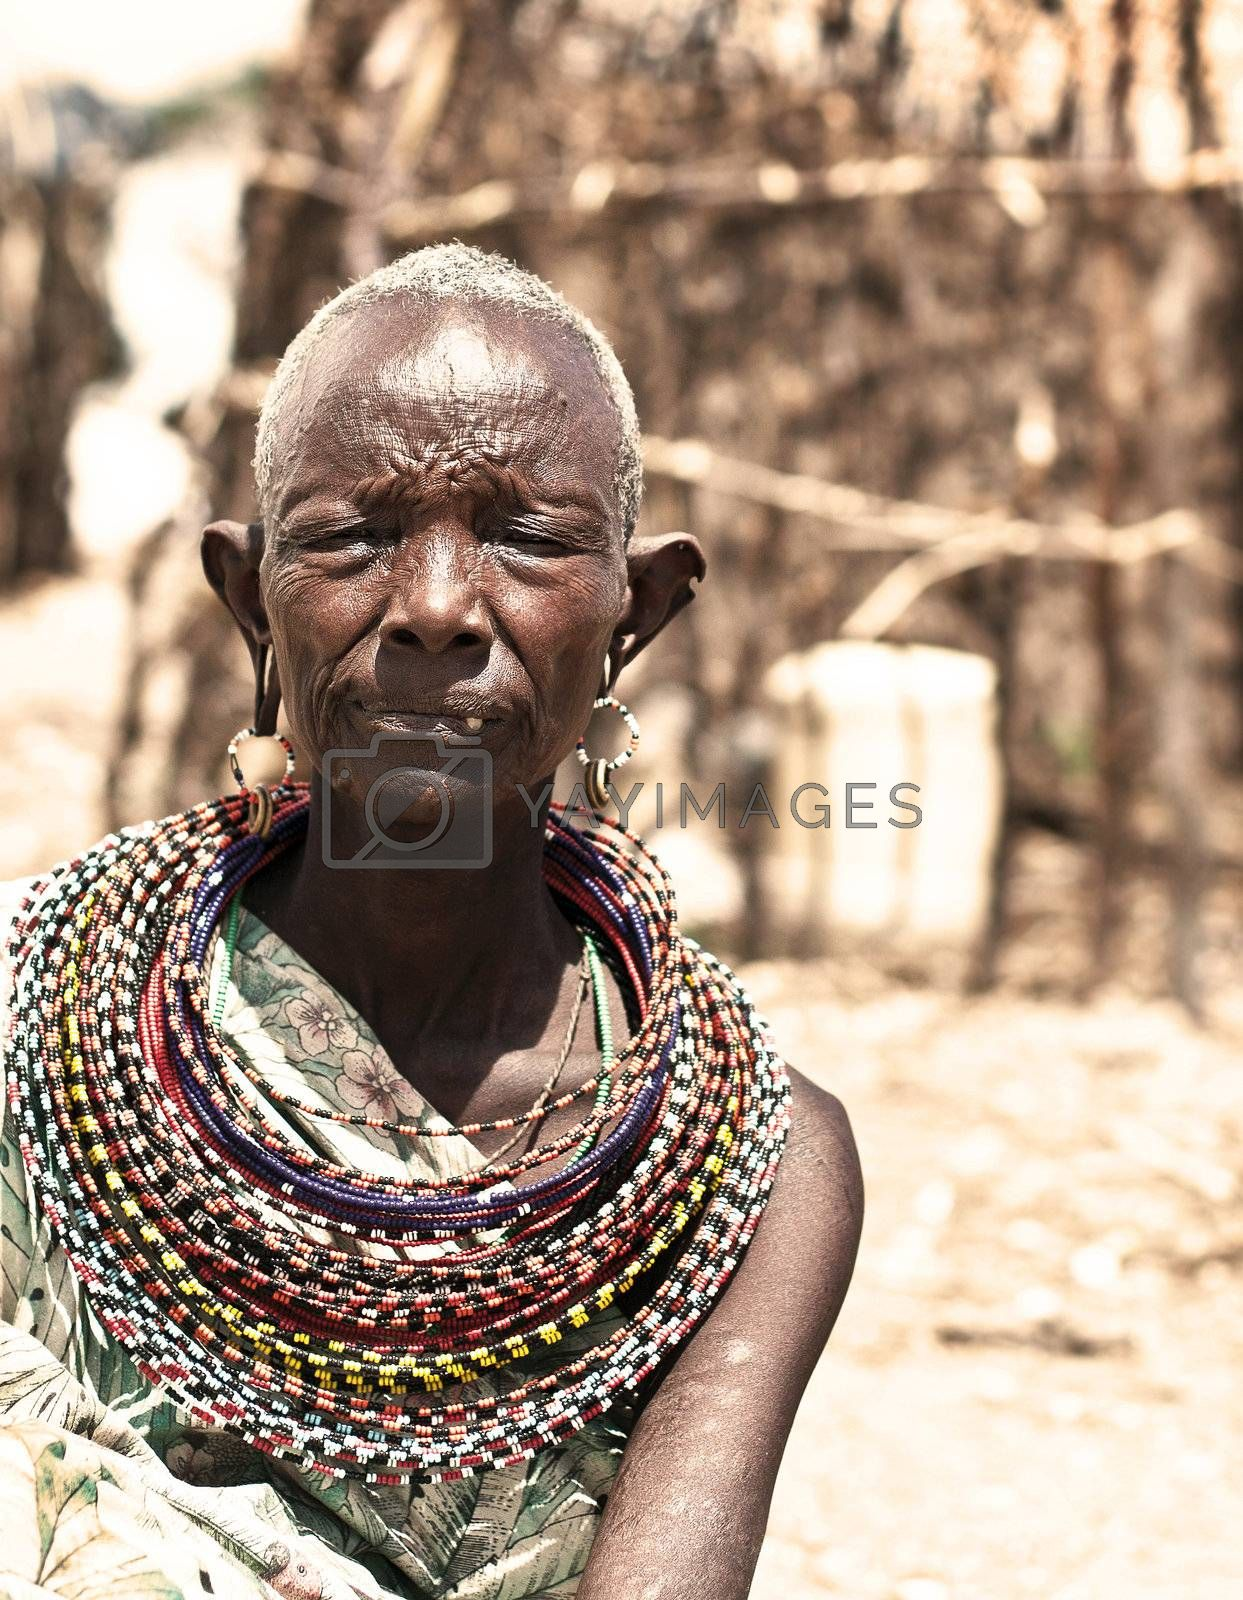 SAMBURU, KENYA - NOVEMBER 8: portrait of unidentified African tribal lady, wears handmade cultural accessories for traditional dance on November 8, 2008 in tribal village near Samburu National Park Reserve, Kenya.